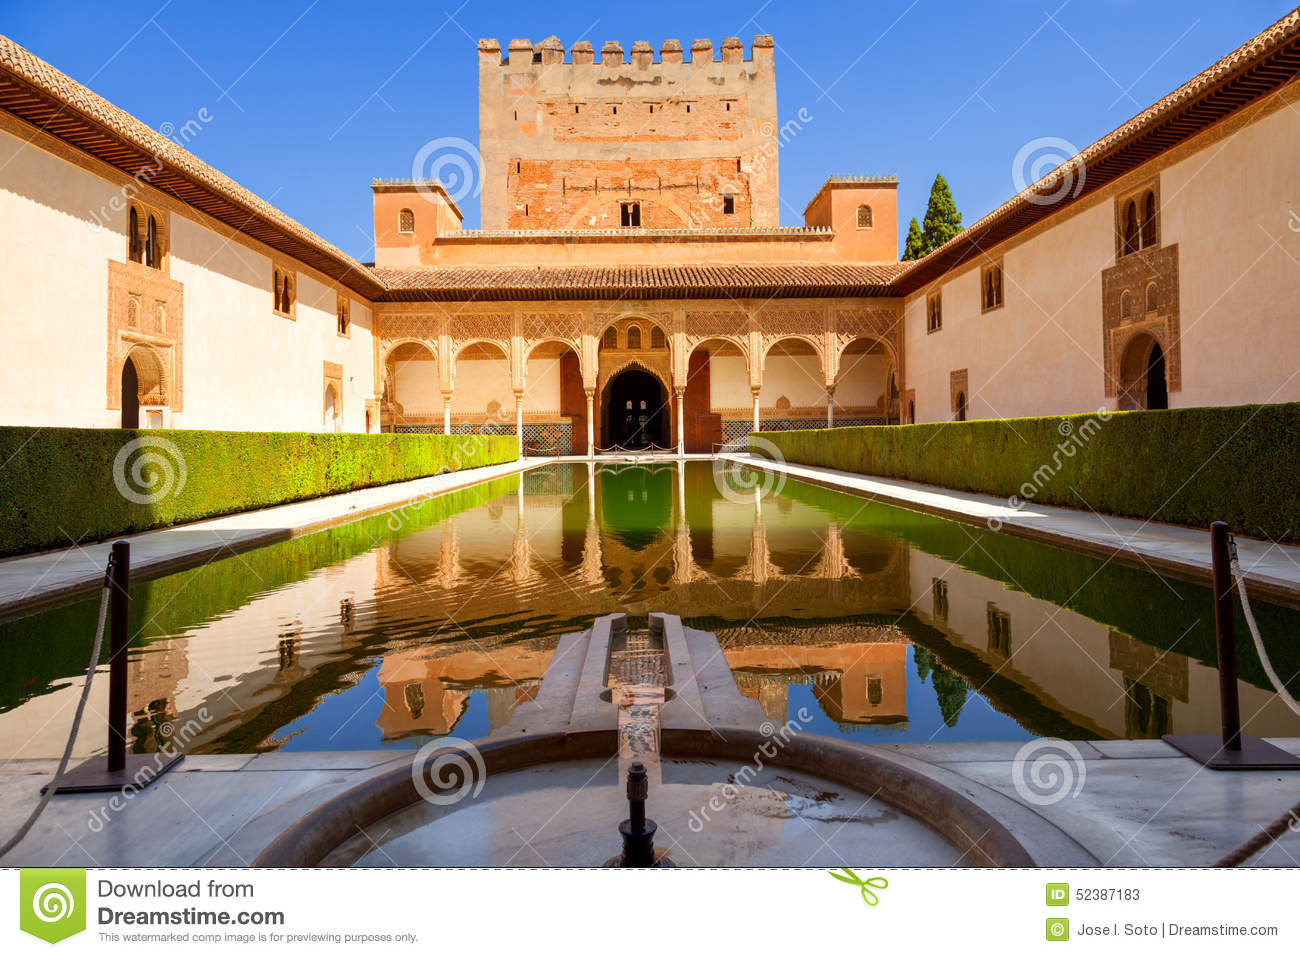 Patio De Arrayanes In The Alhambra De Granada. Stock Photo - Image: 52387183